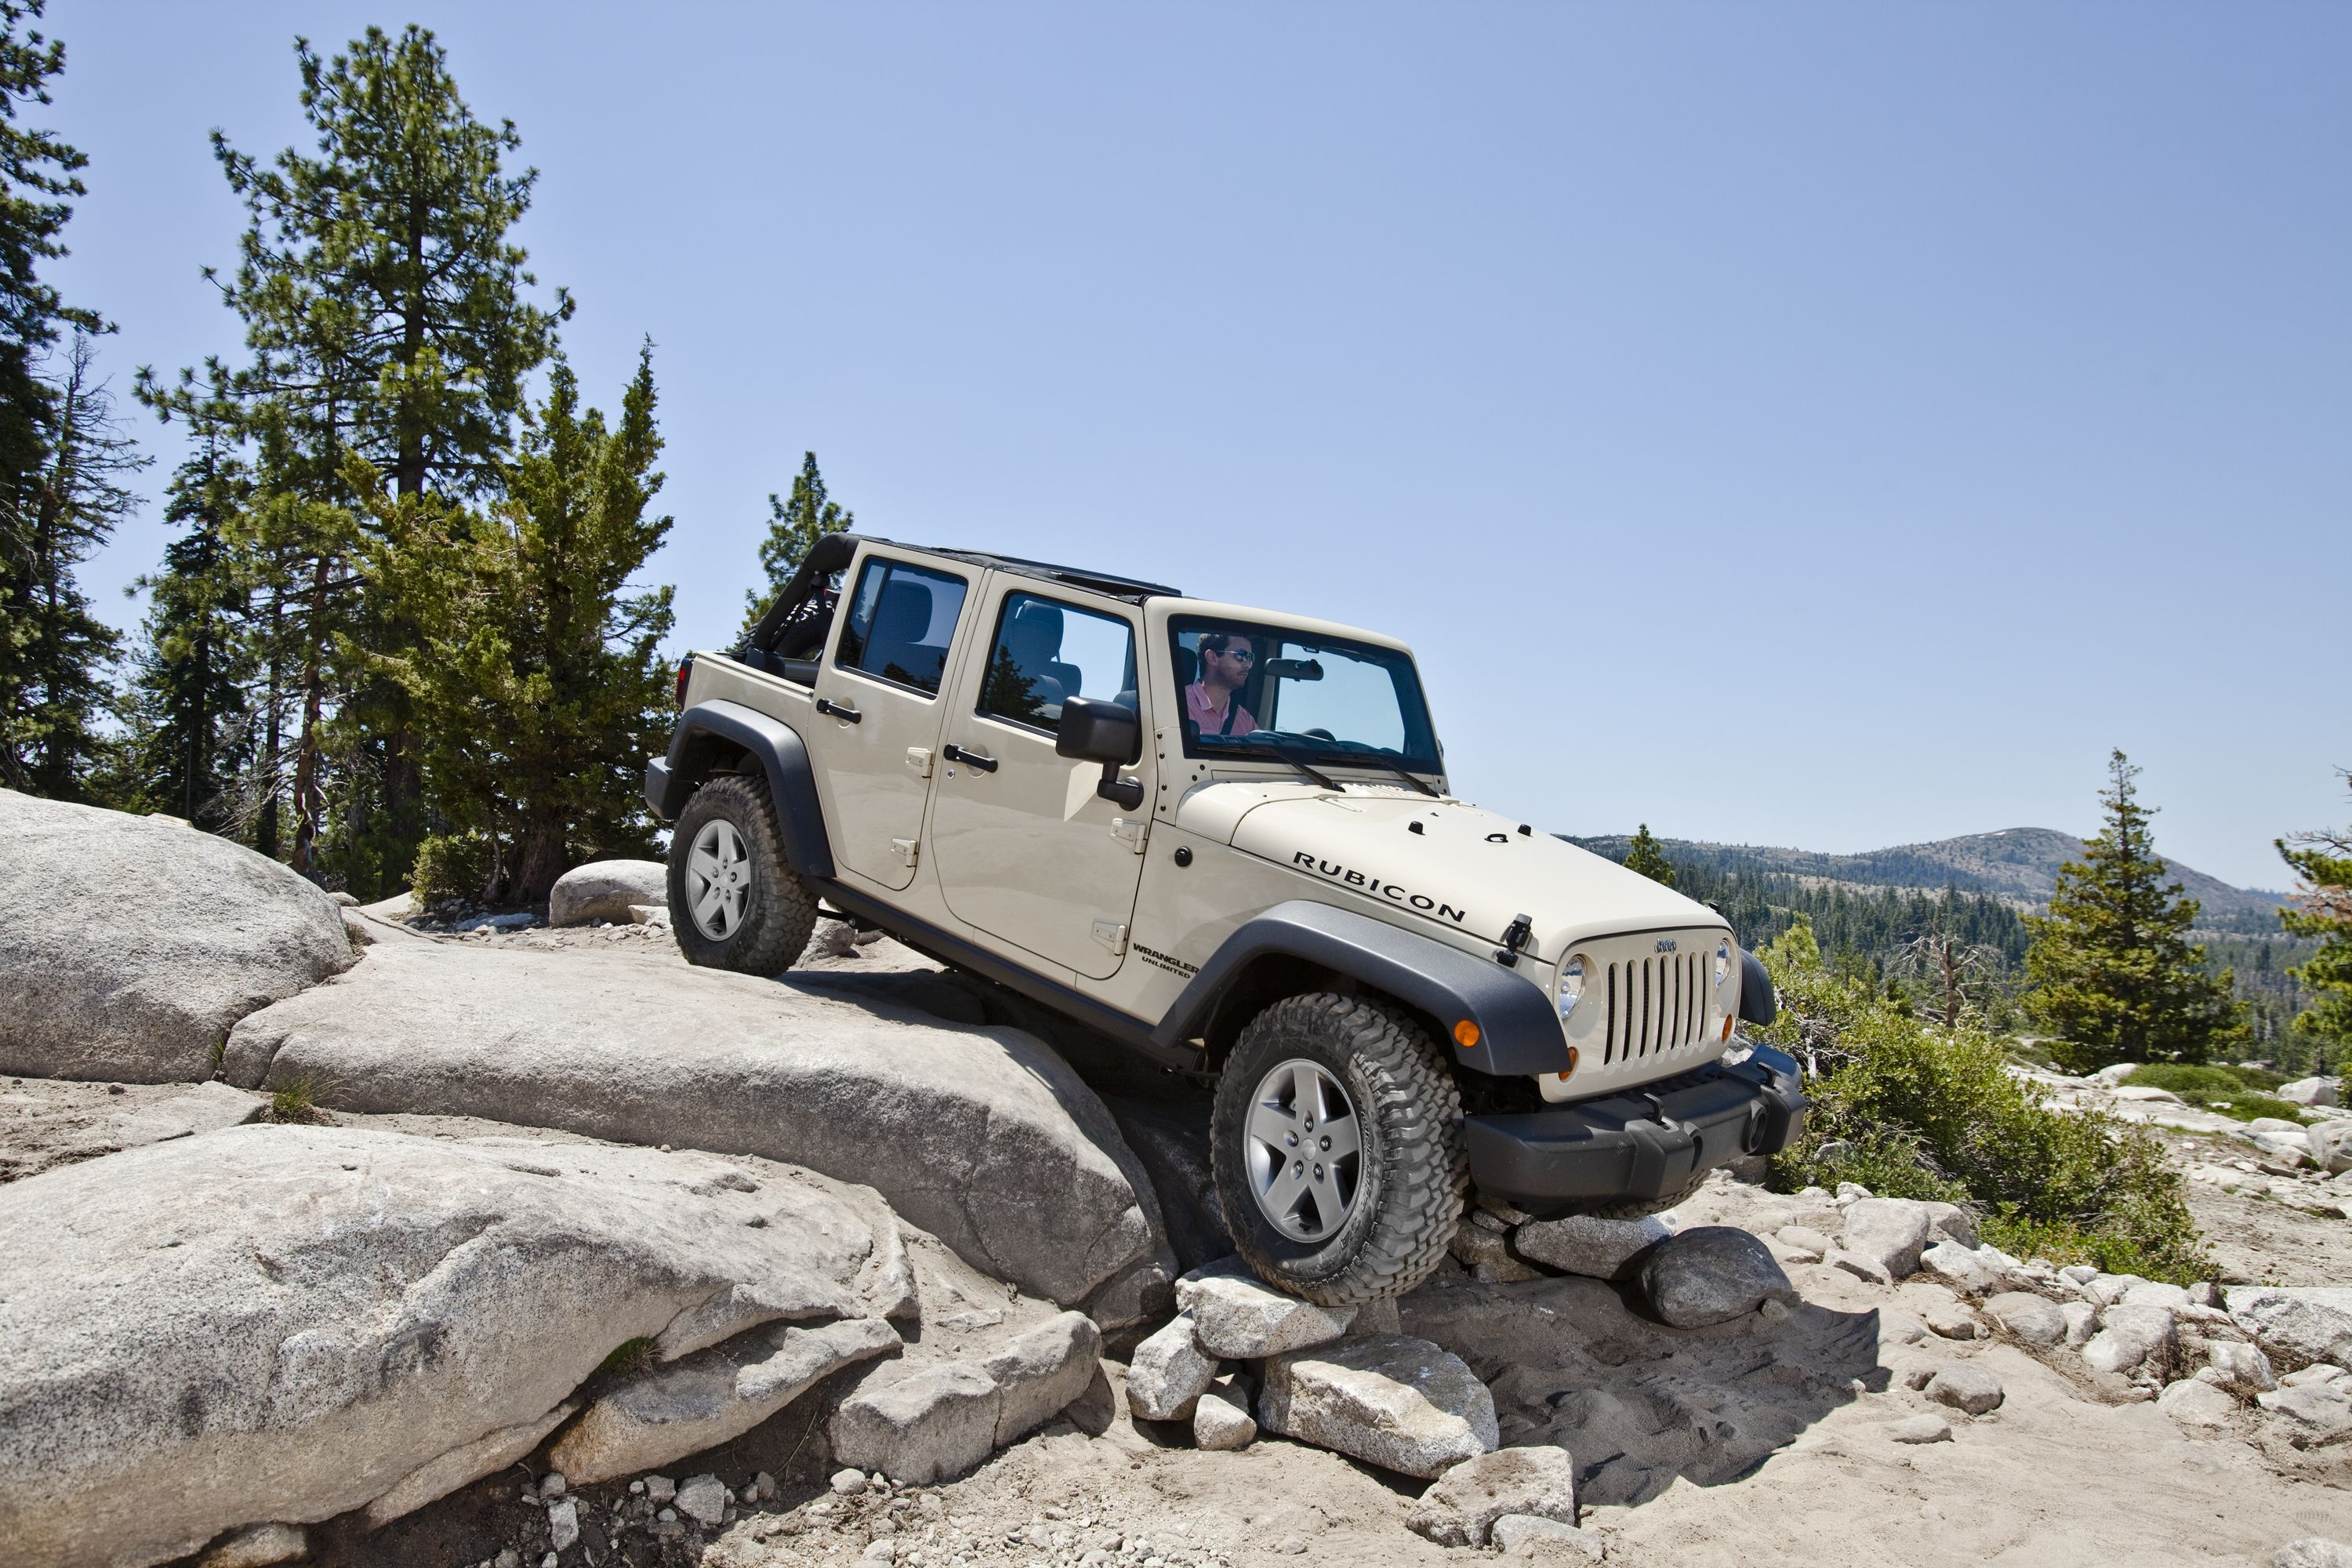 Jeep tops 'Consumer Reports' list of worst car values -  http://www.baindaily.com/jeep-tops-consumer-reports -list-of-worst-car-values/